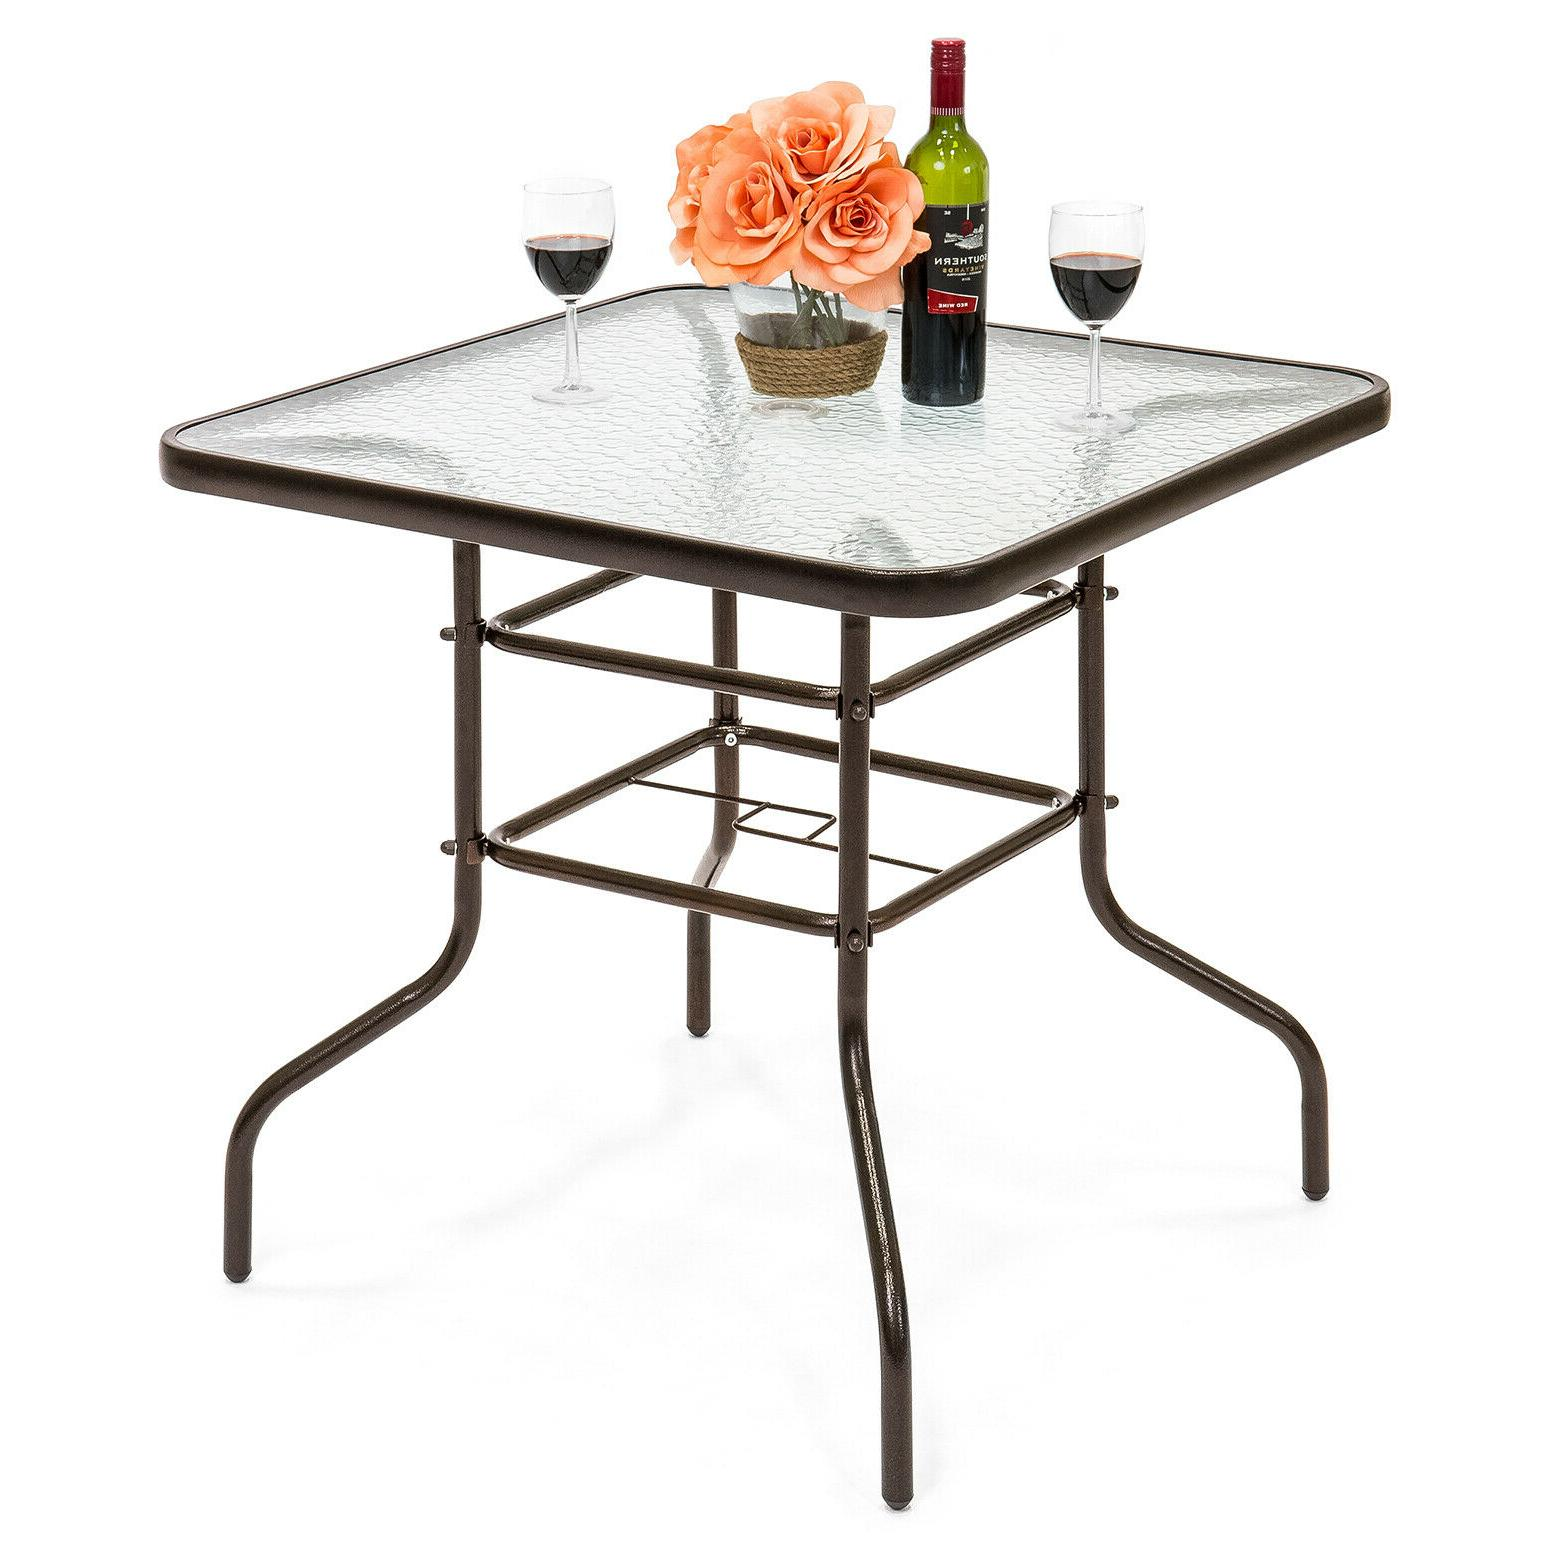 "Patio Dining Table 32"" x 32"" Square Tempered Glass Tabletop"